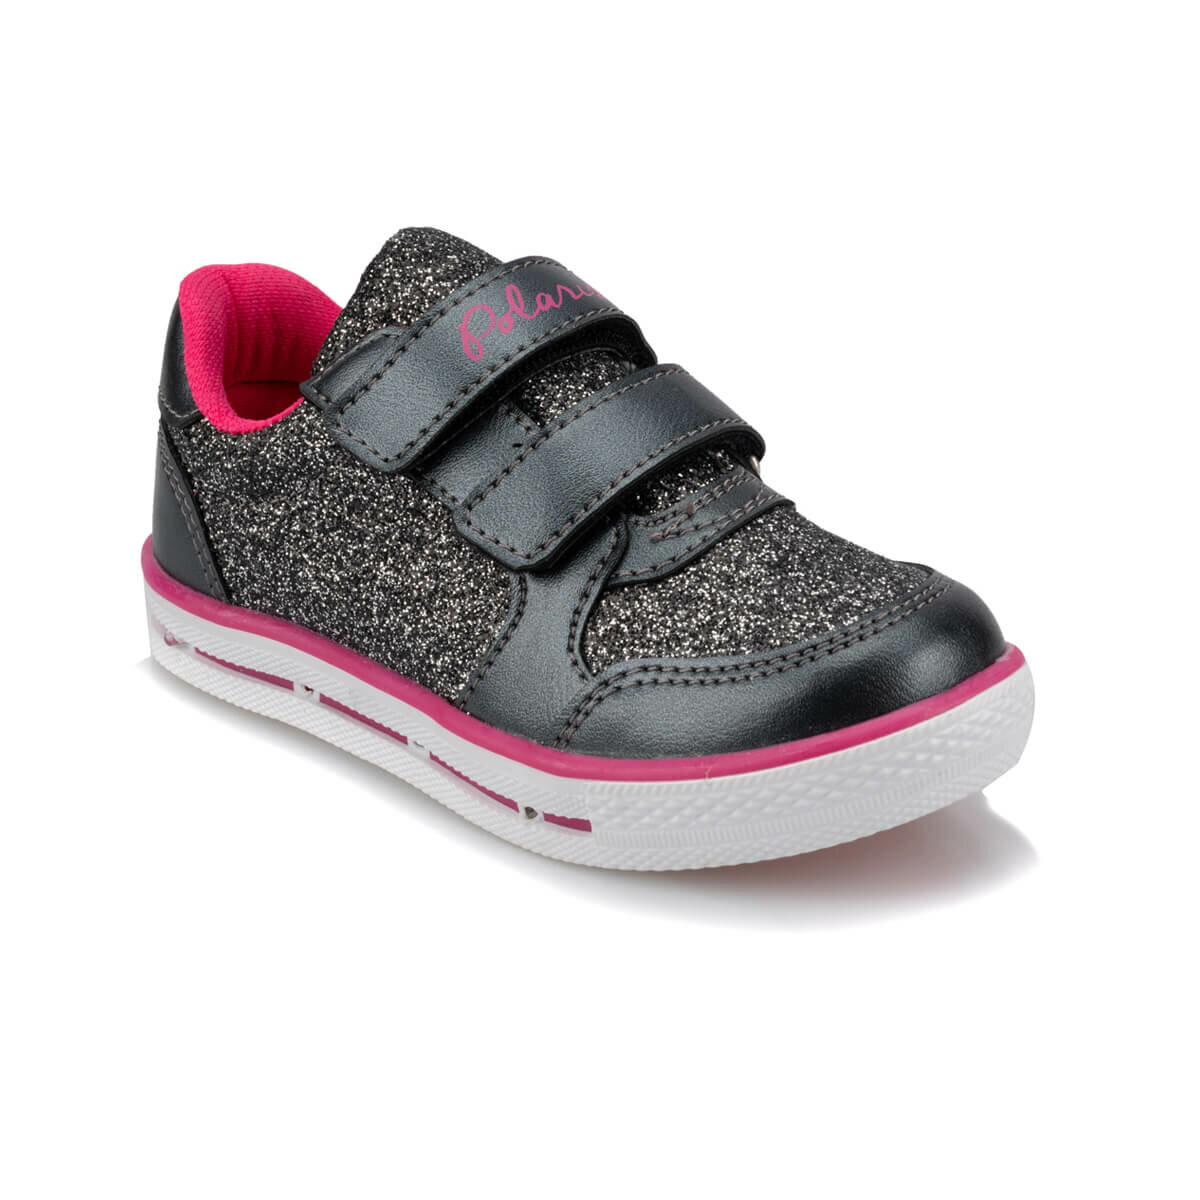 FLO 92.511789.P Black Female Child Sneaker Shoes Polaris